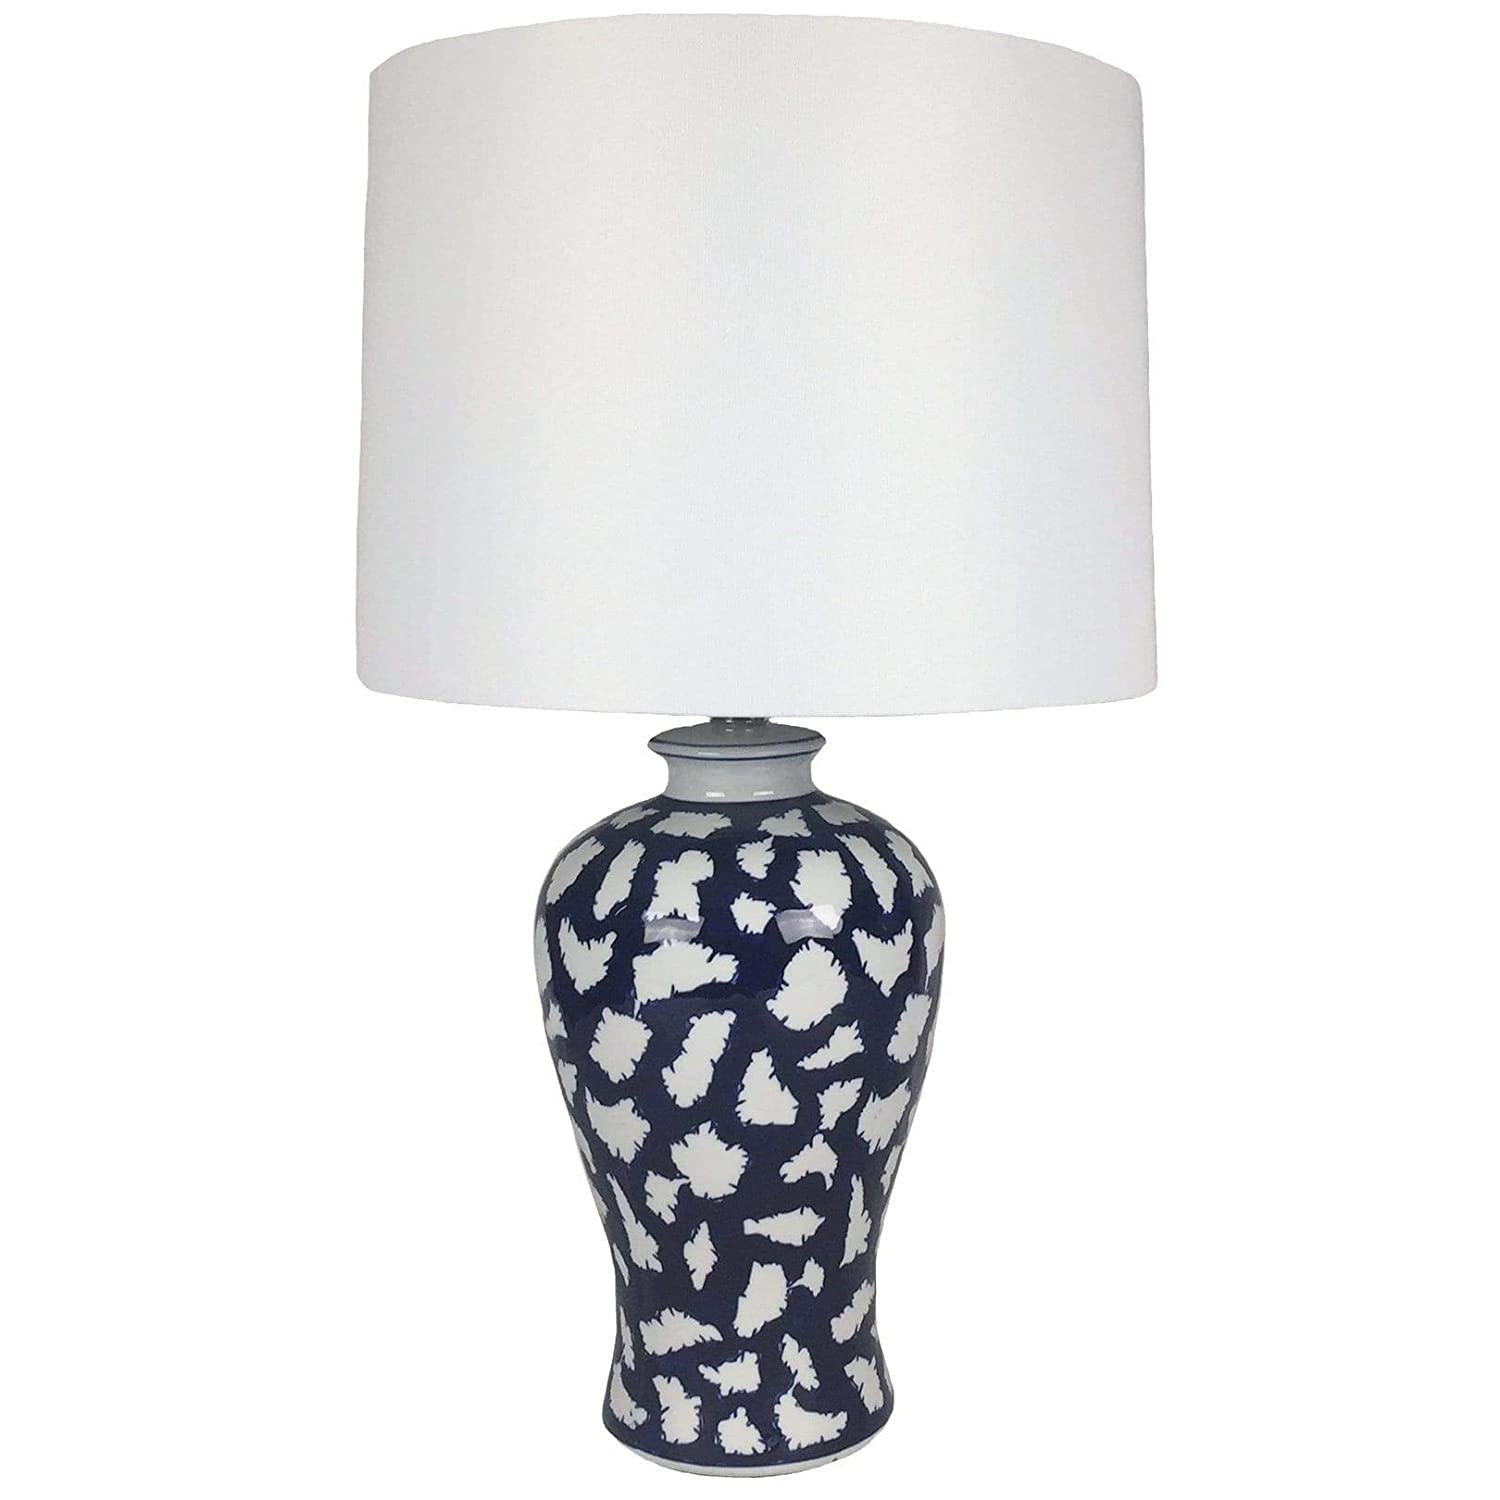 Jt Lighting Cally Set Of 2 Blue And White Ceramic Lamps 24 Inch